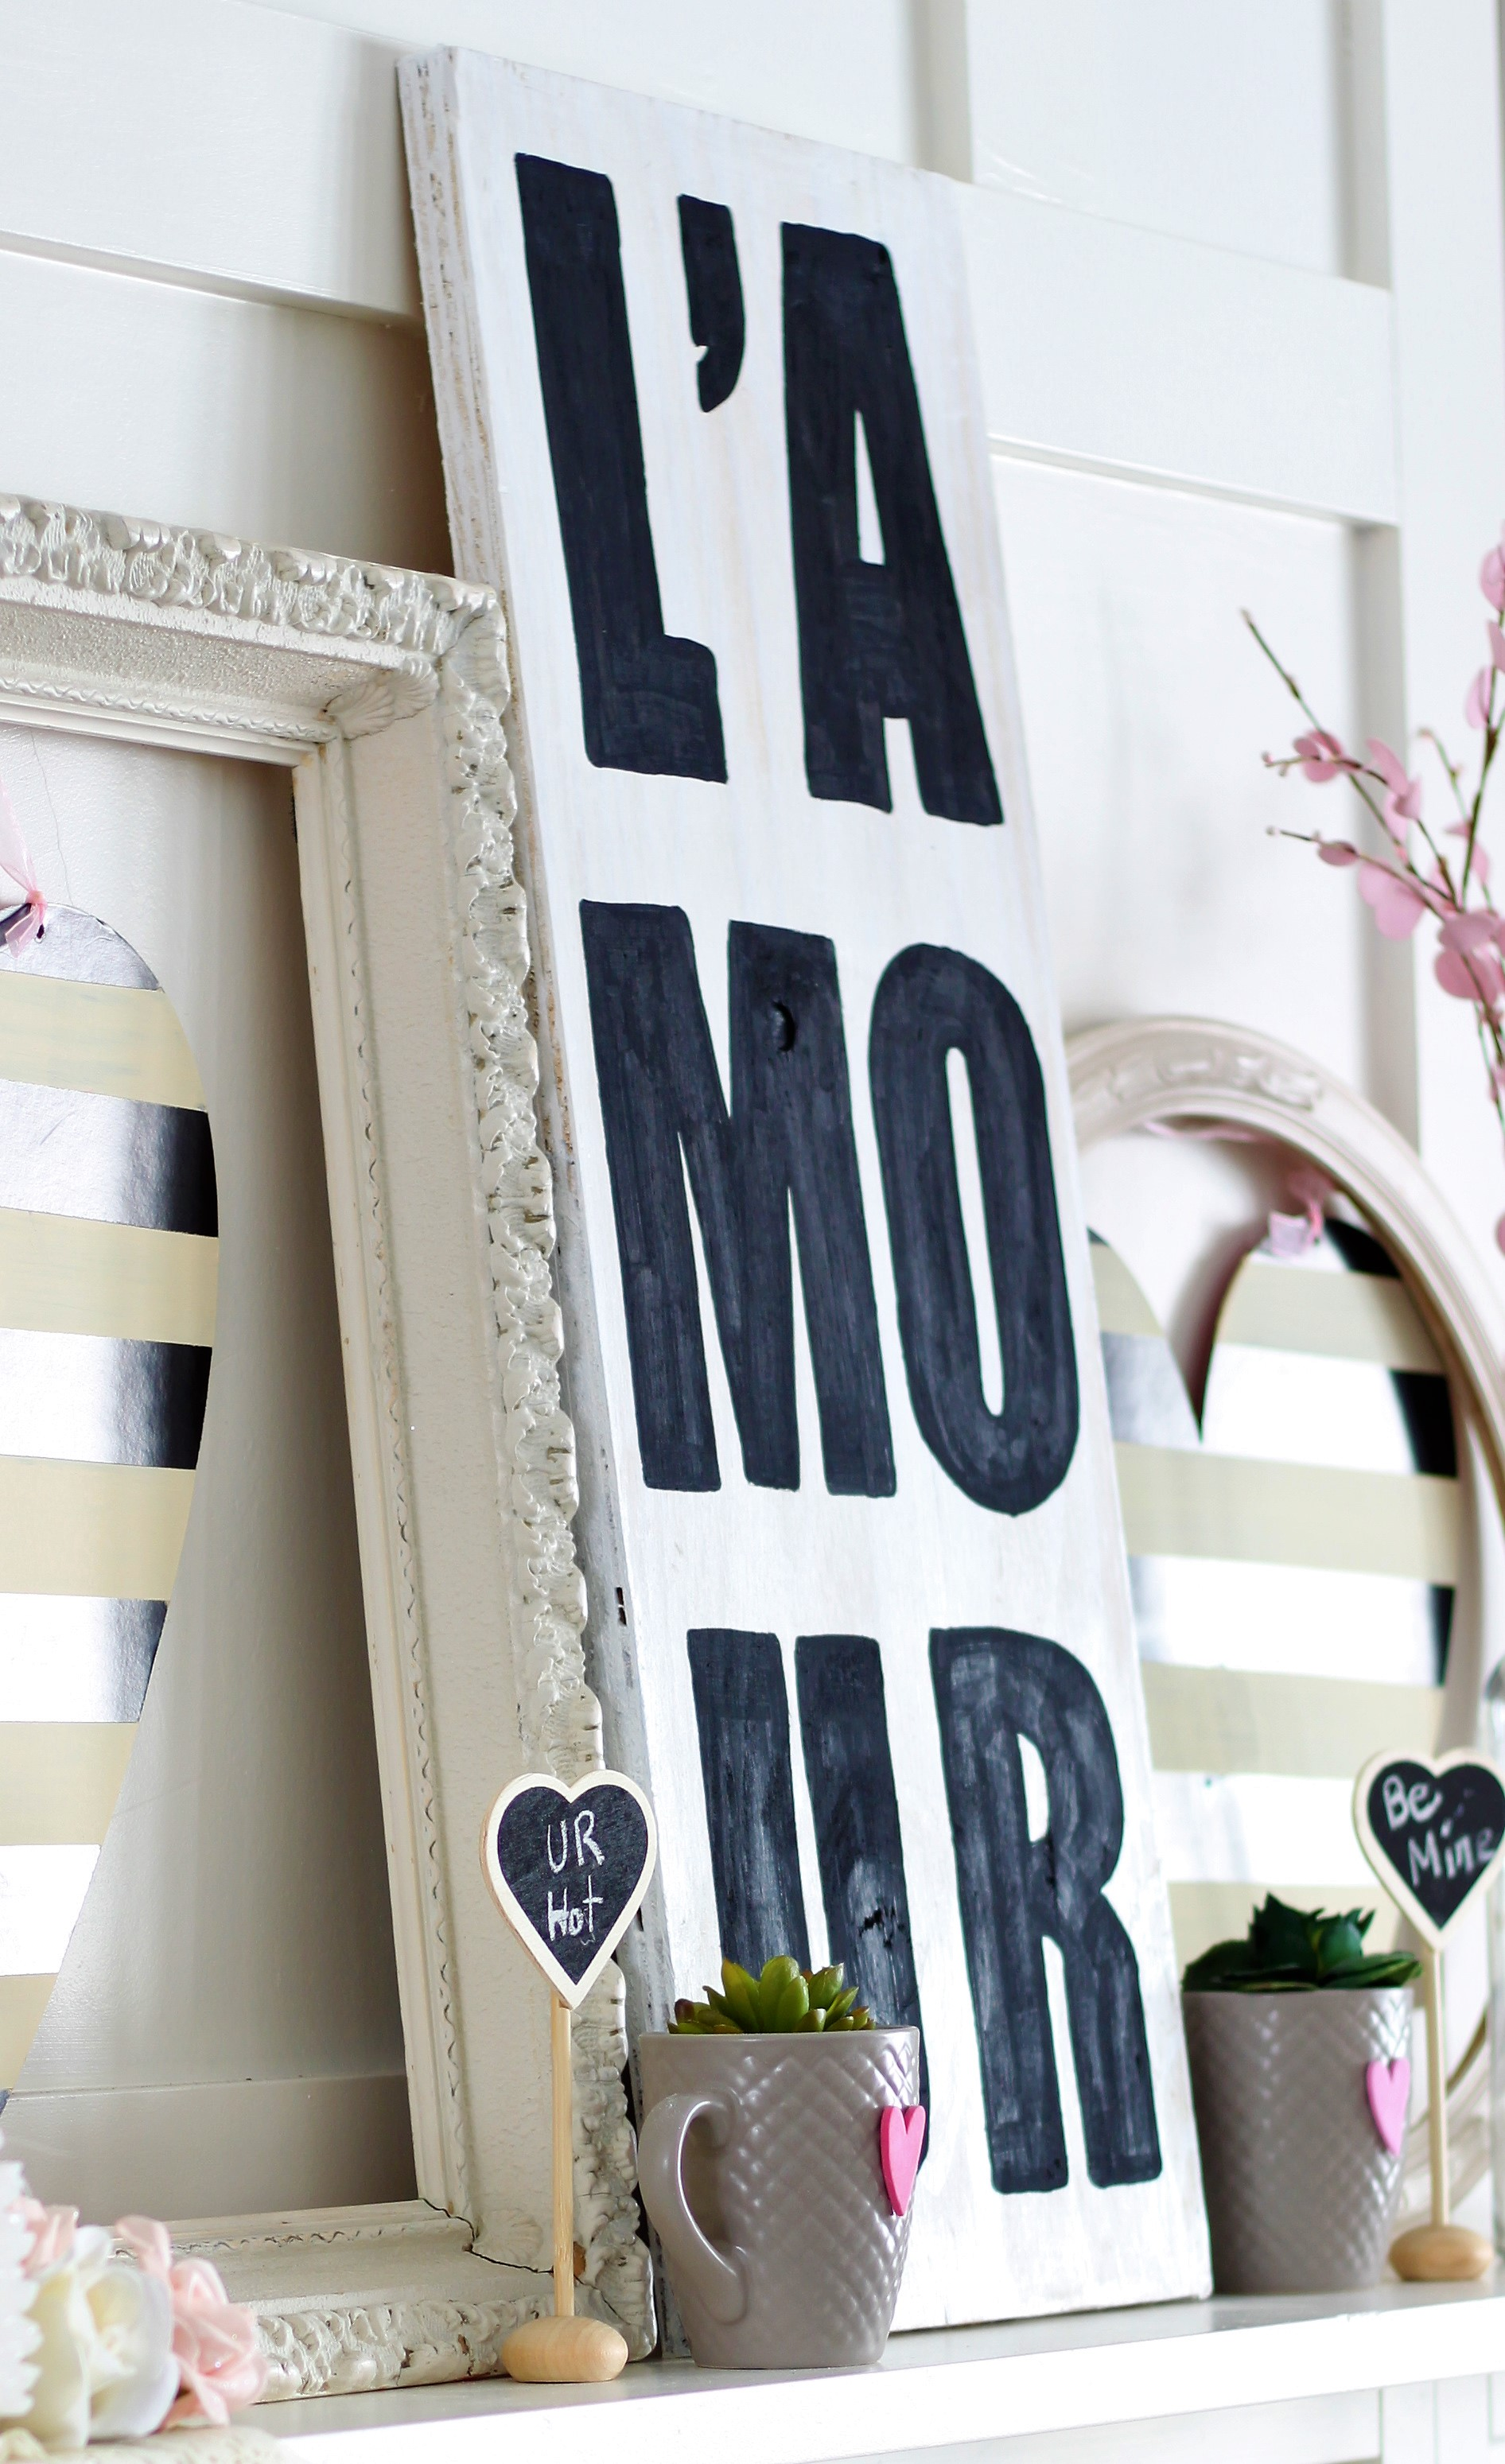 Valentine's Day L'Amour sign made from scrap wood